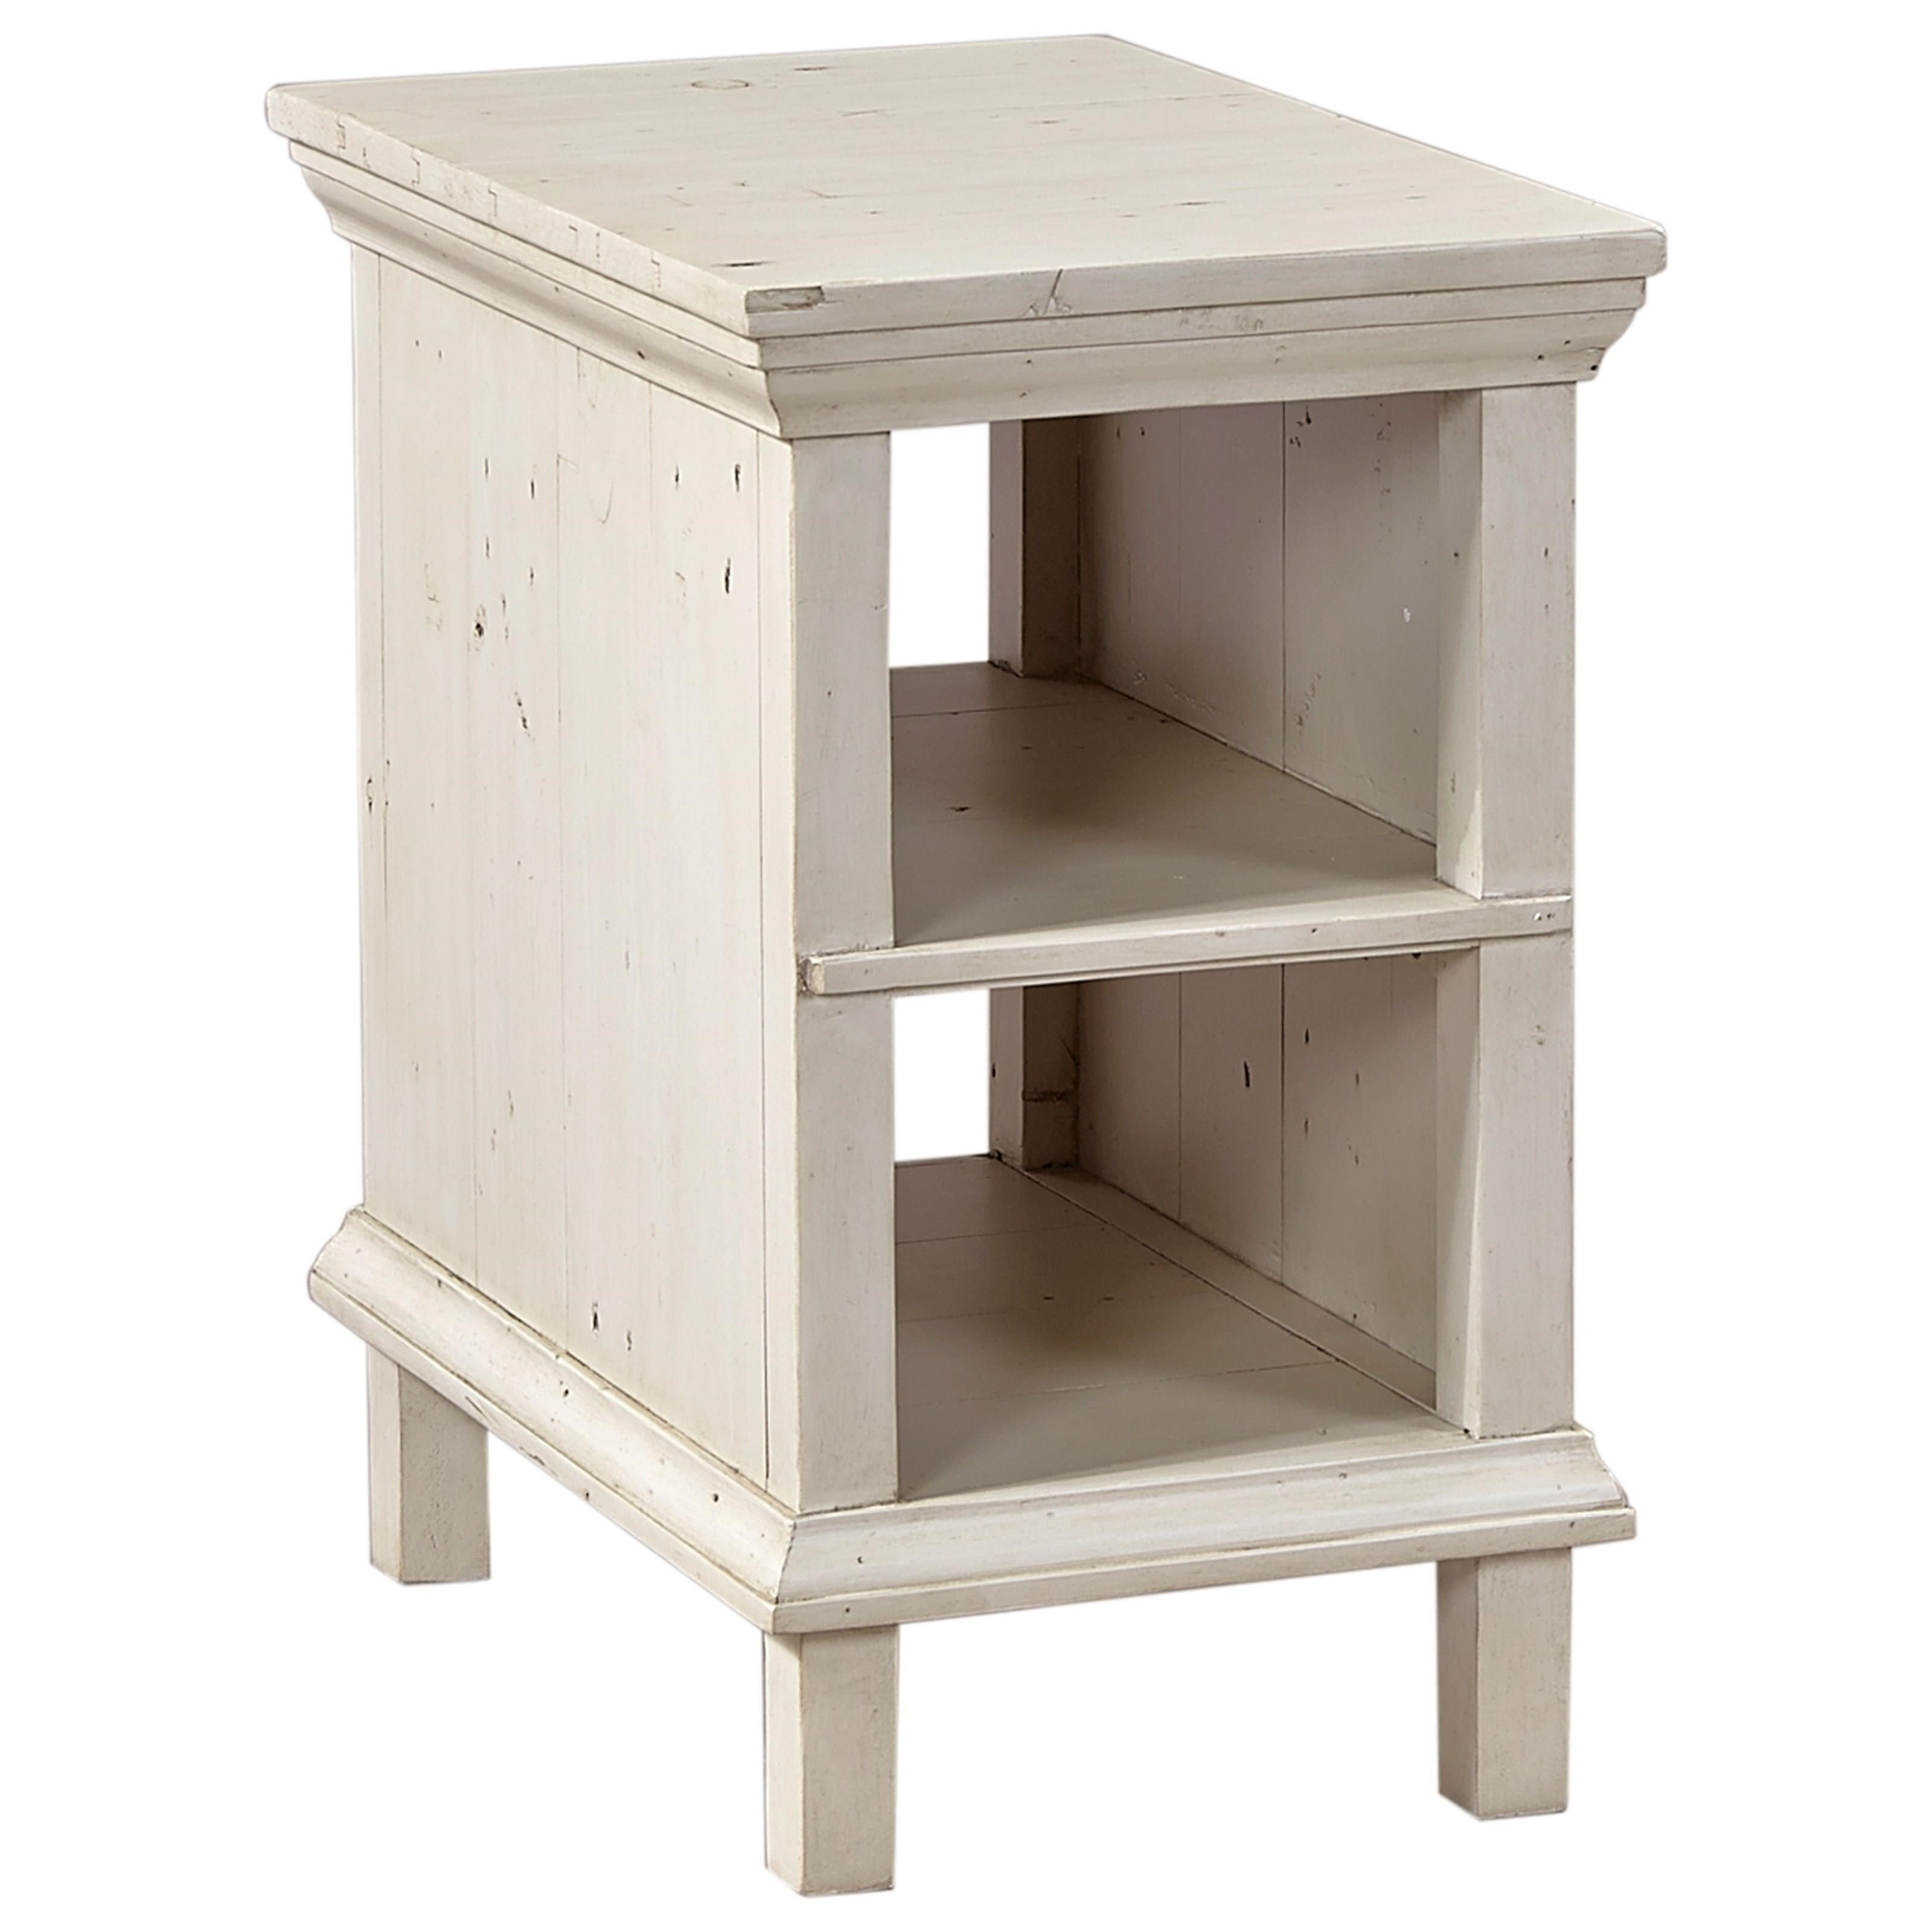 Aspenhome Preferences Chairside Table  - Item Number: I44-9130-LIN